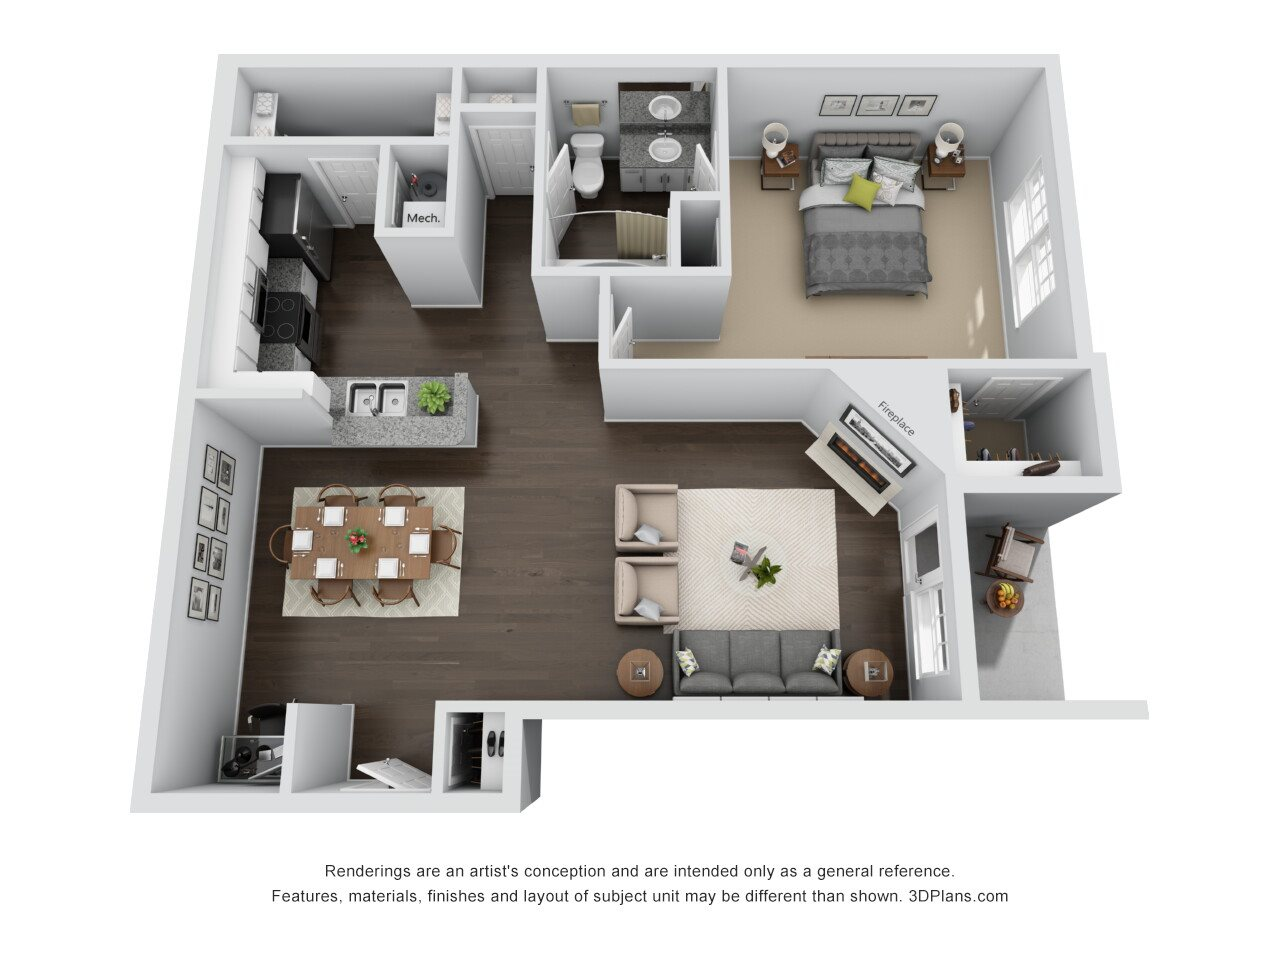 1 2 3 bedroom apartments in birmingham al stonegate - 1 bedroom apartments in hoover al ...